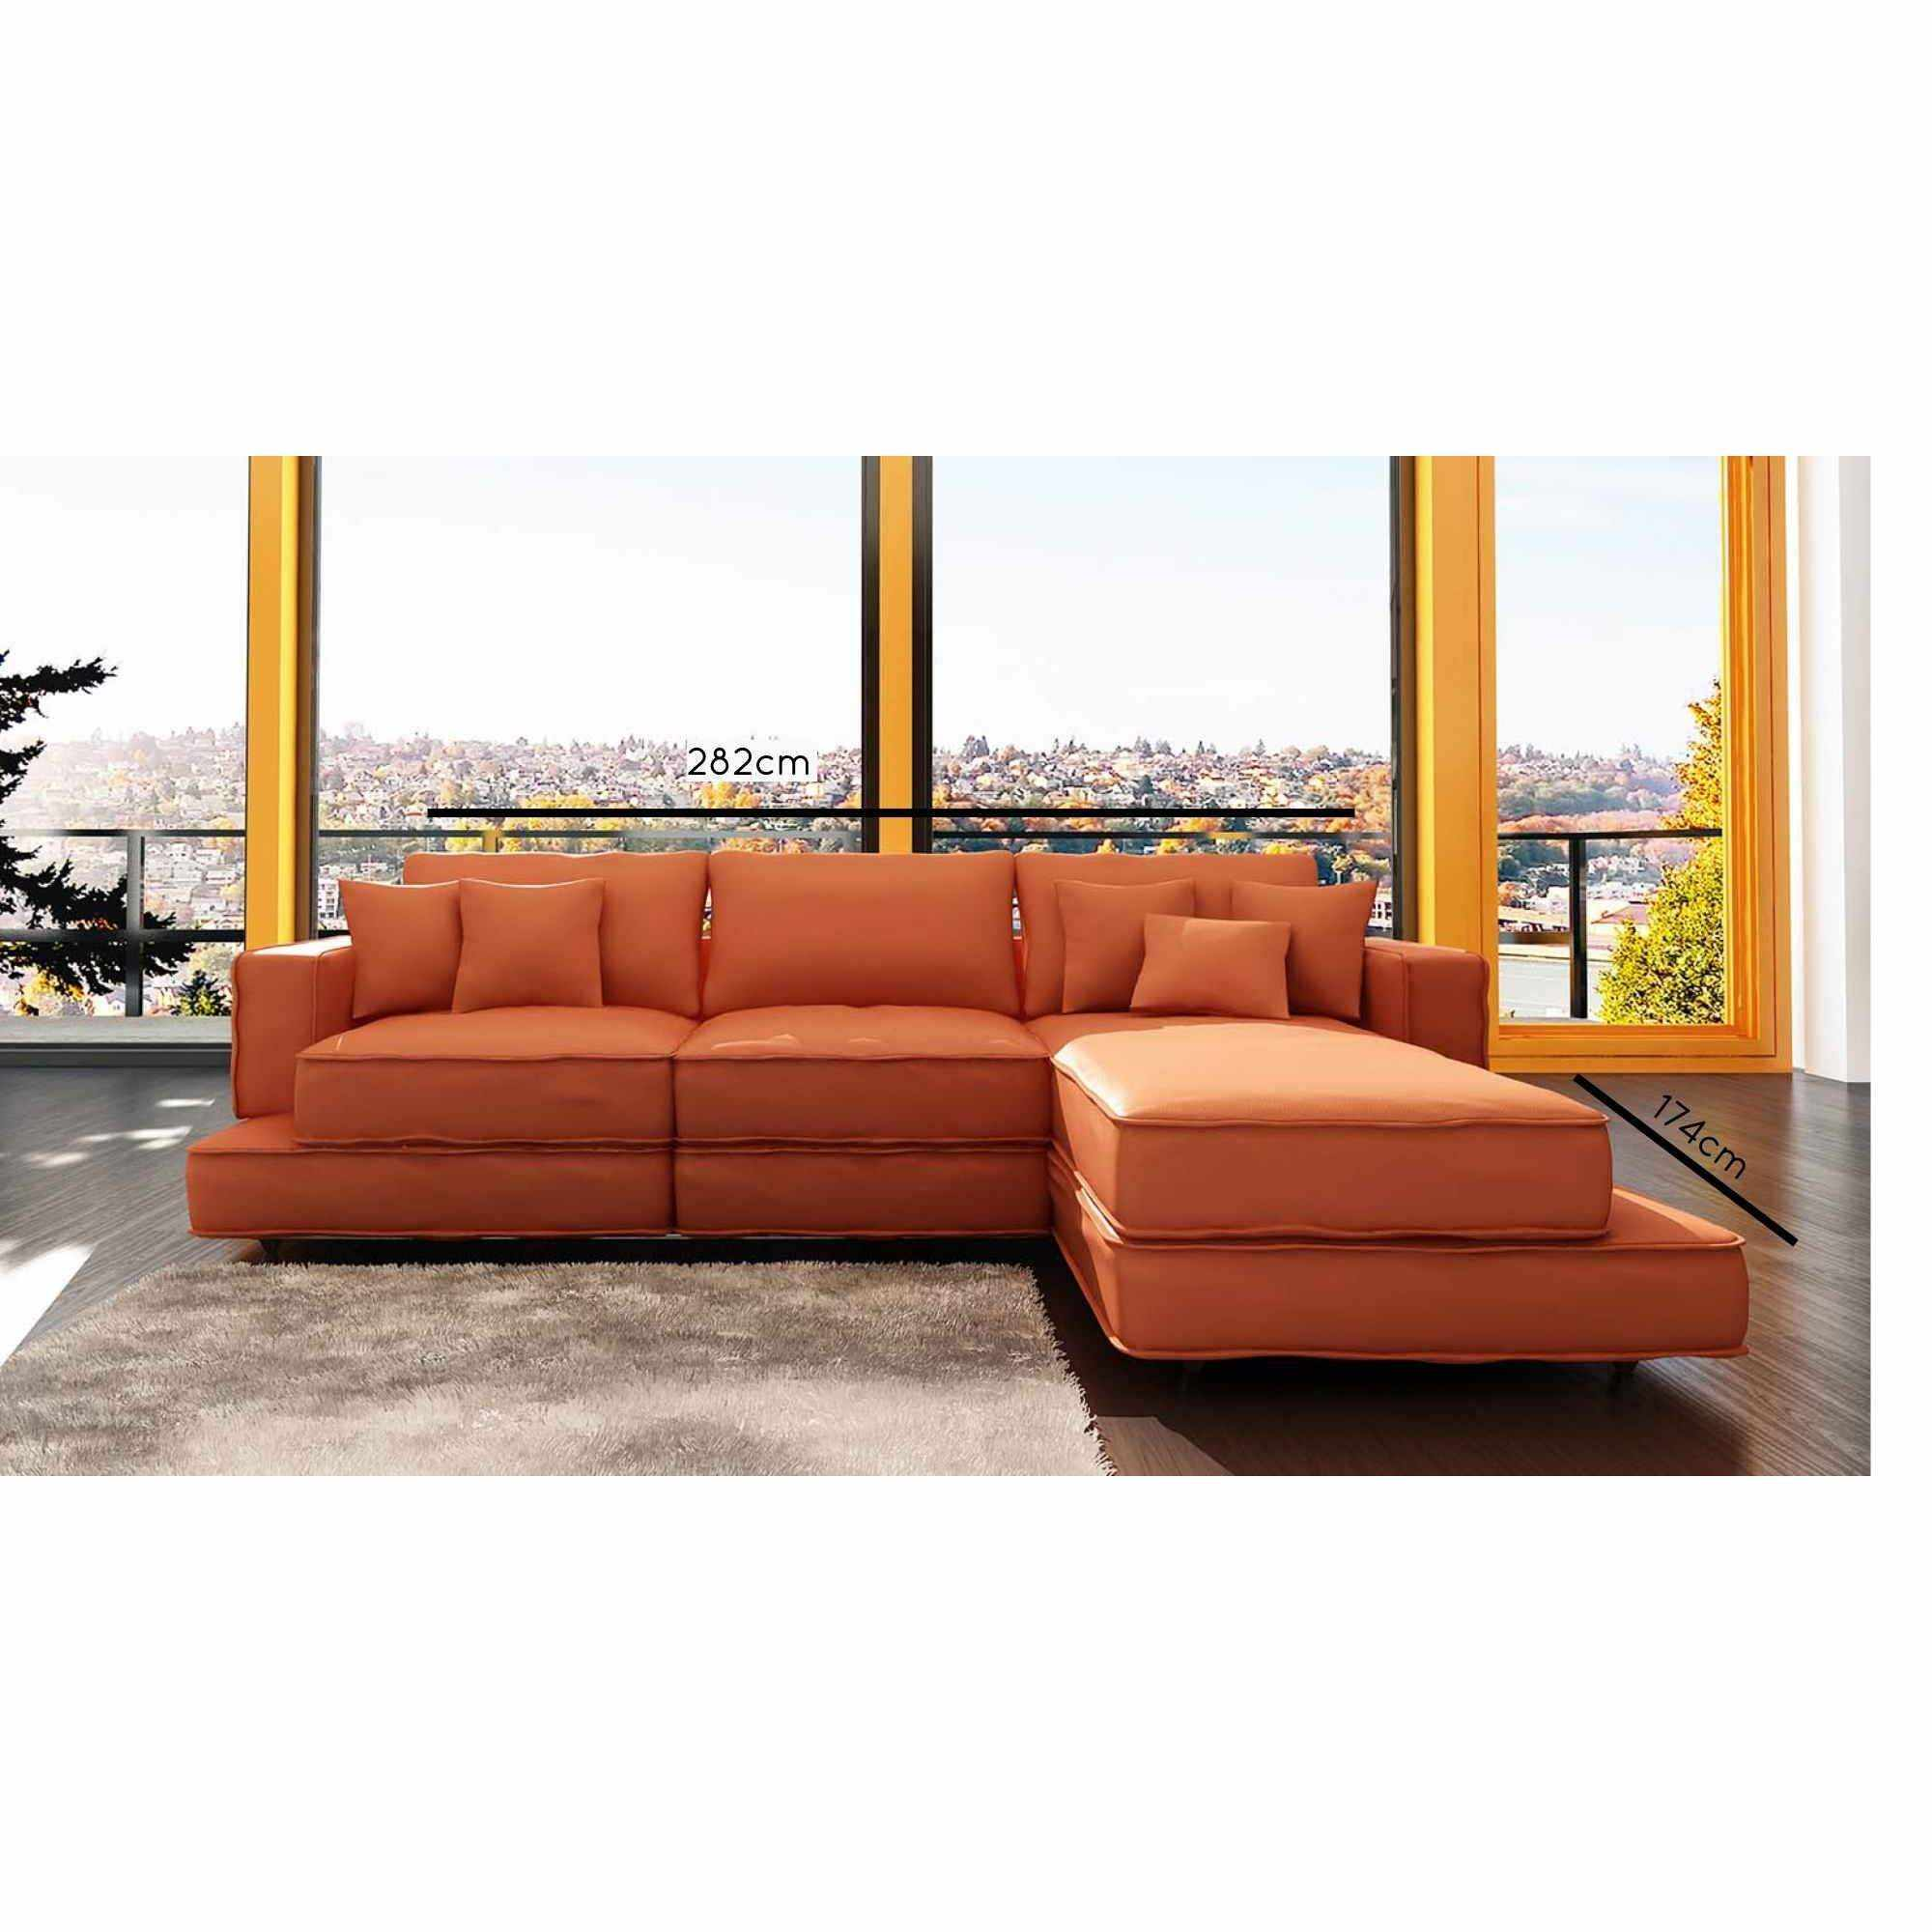 deco in paris canape d angle en cuir orange vegas vegas cuir orange. Black Bedroom Furniture Sets. Home Design Ideas